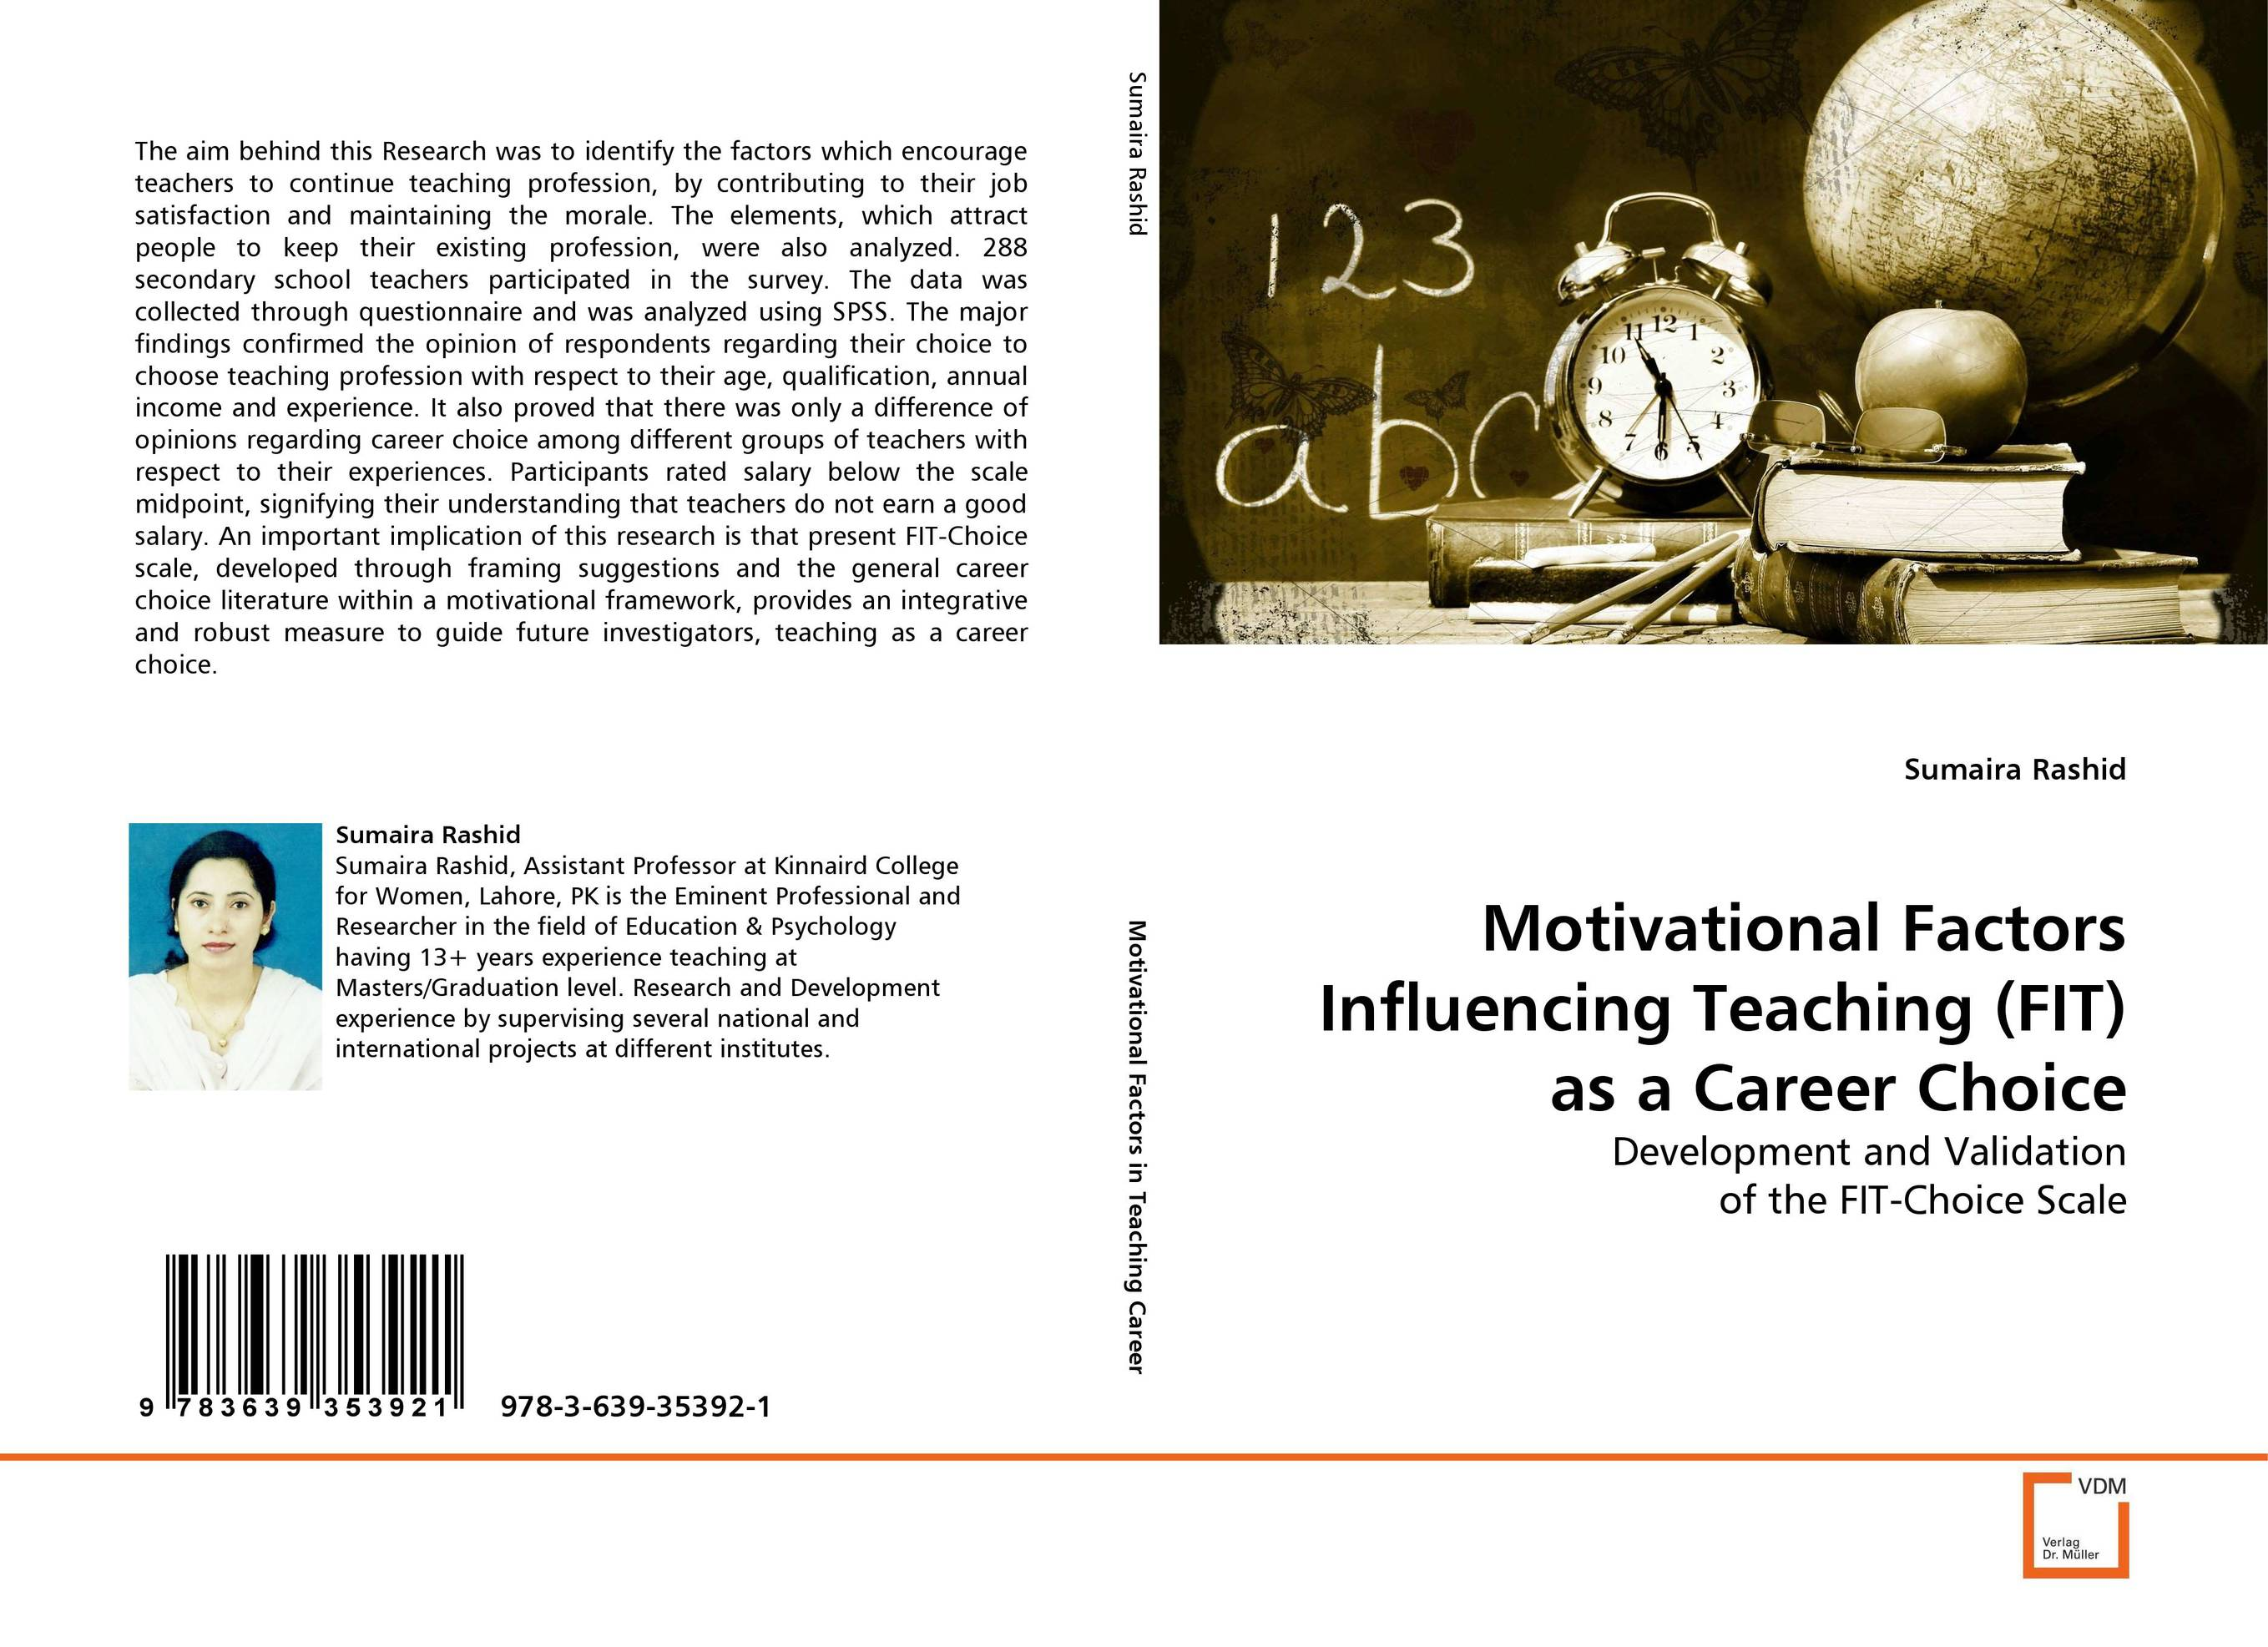 Motivational Factors Influencing Teaching (FIT) as a Career Choice the assistant principalship as a career